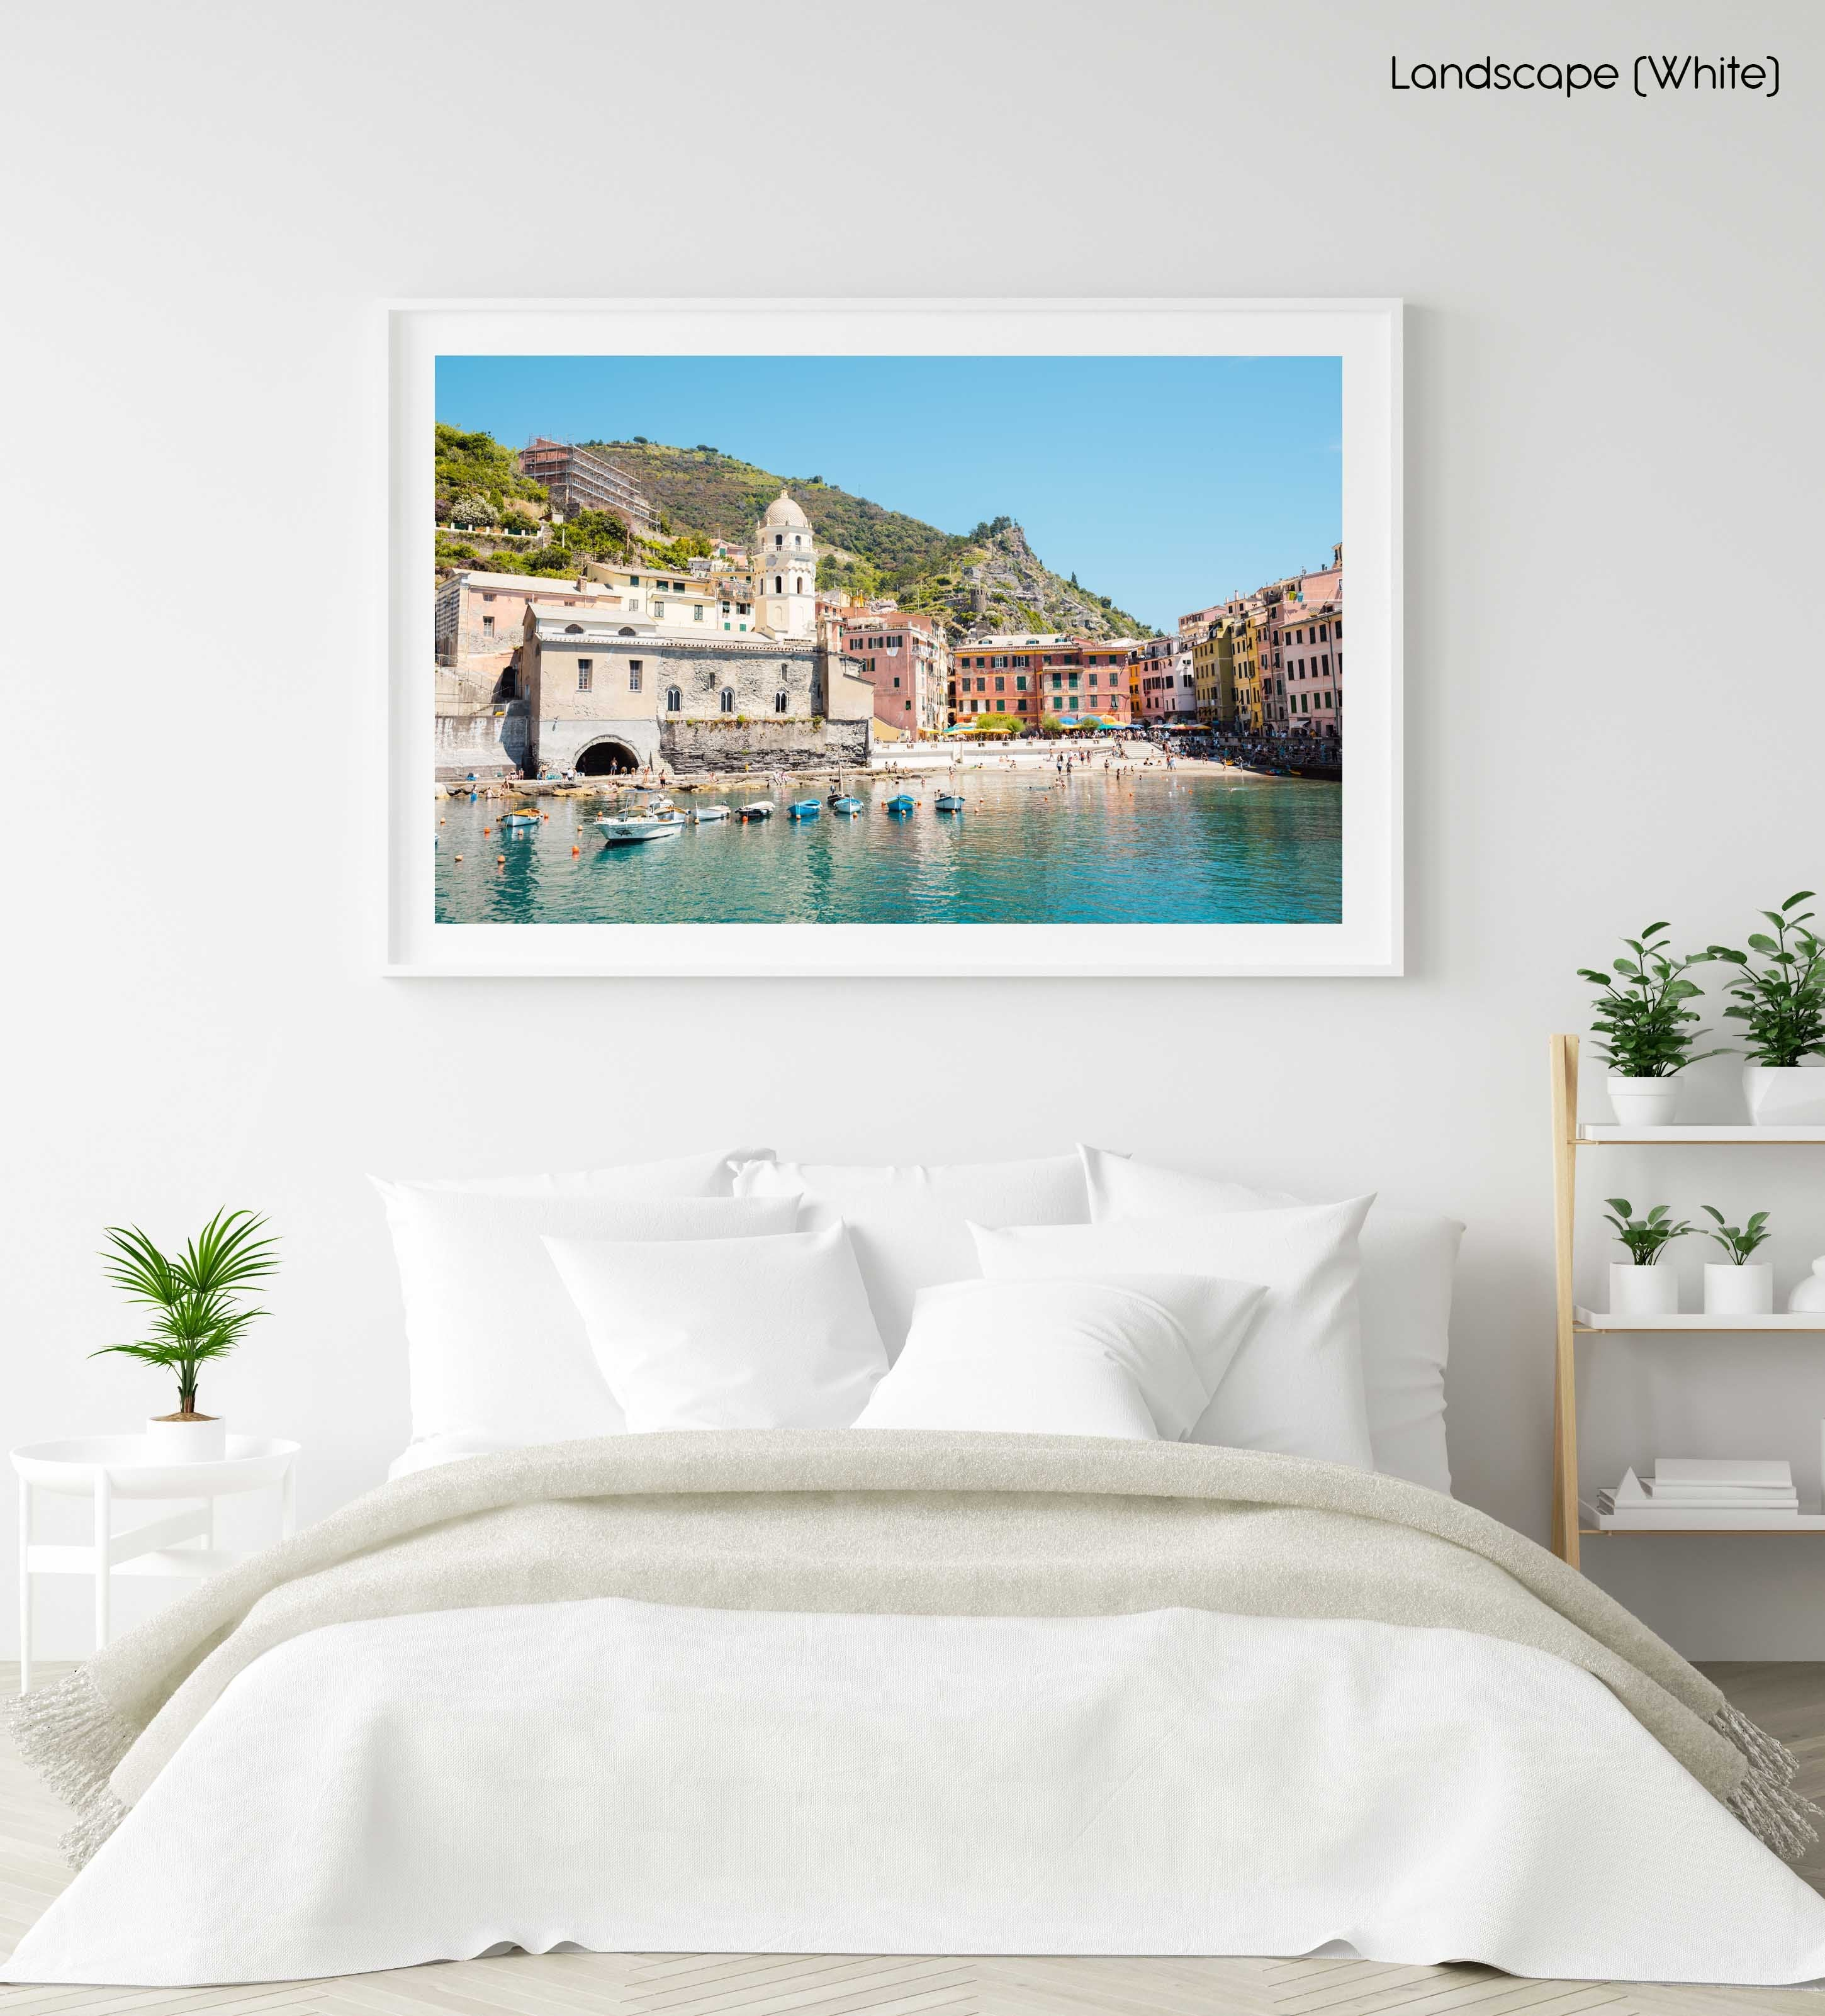 Beach, boats and colorful buildings of Vernazza in Cinque Terre in a white fine art frame